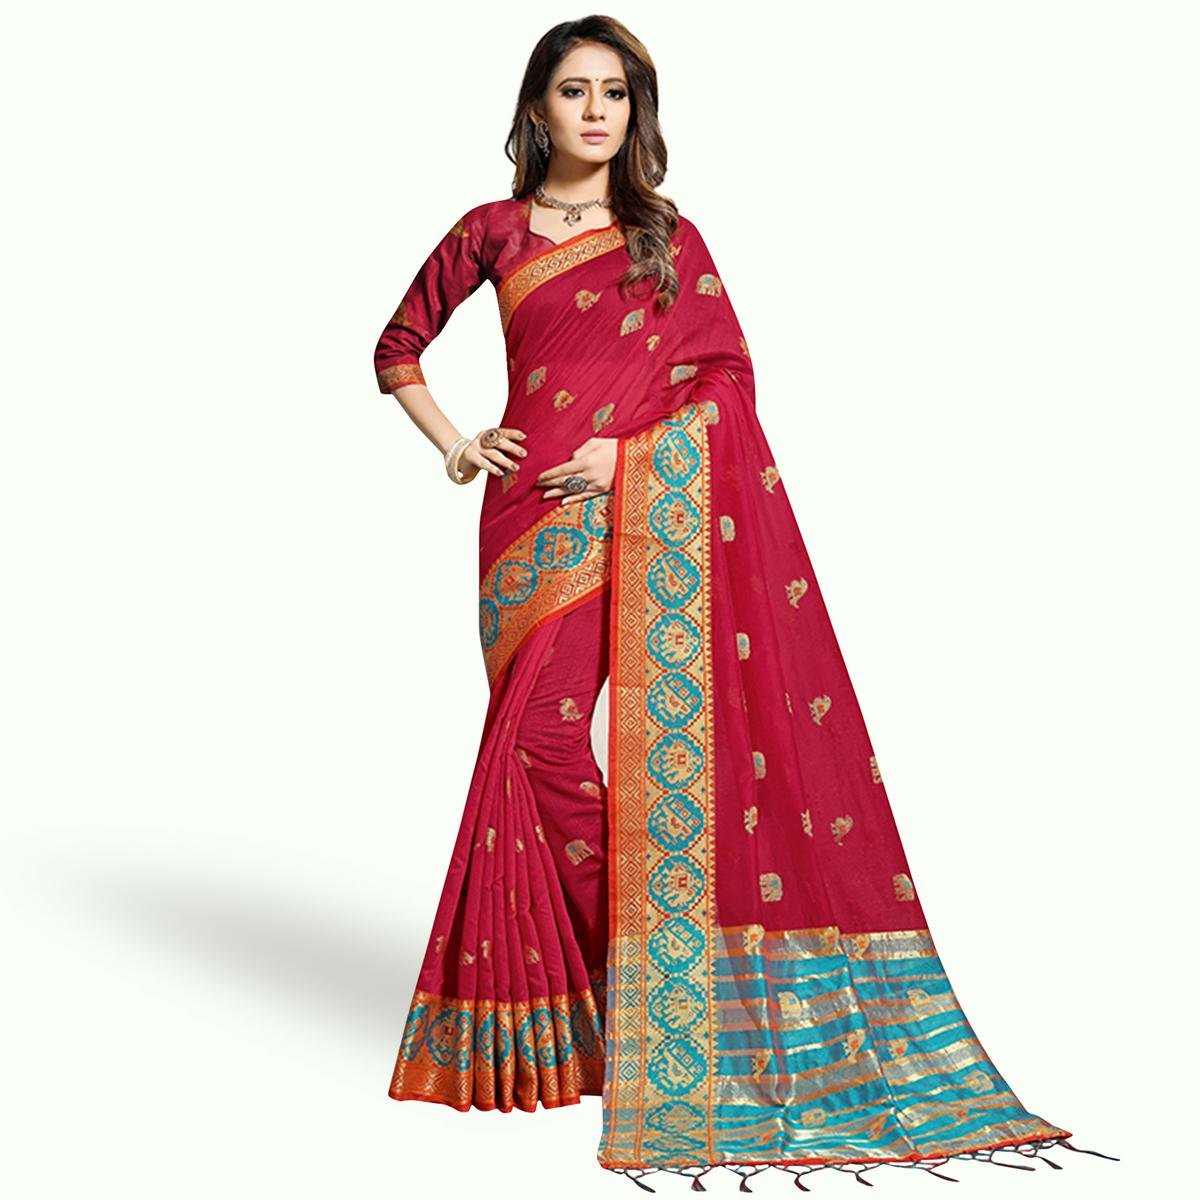 Lovely Red Colored Festive Wear Woven Chanderi Silk Saree